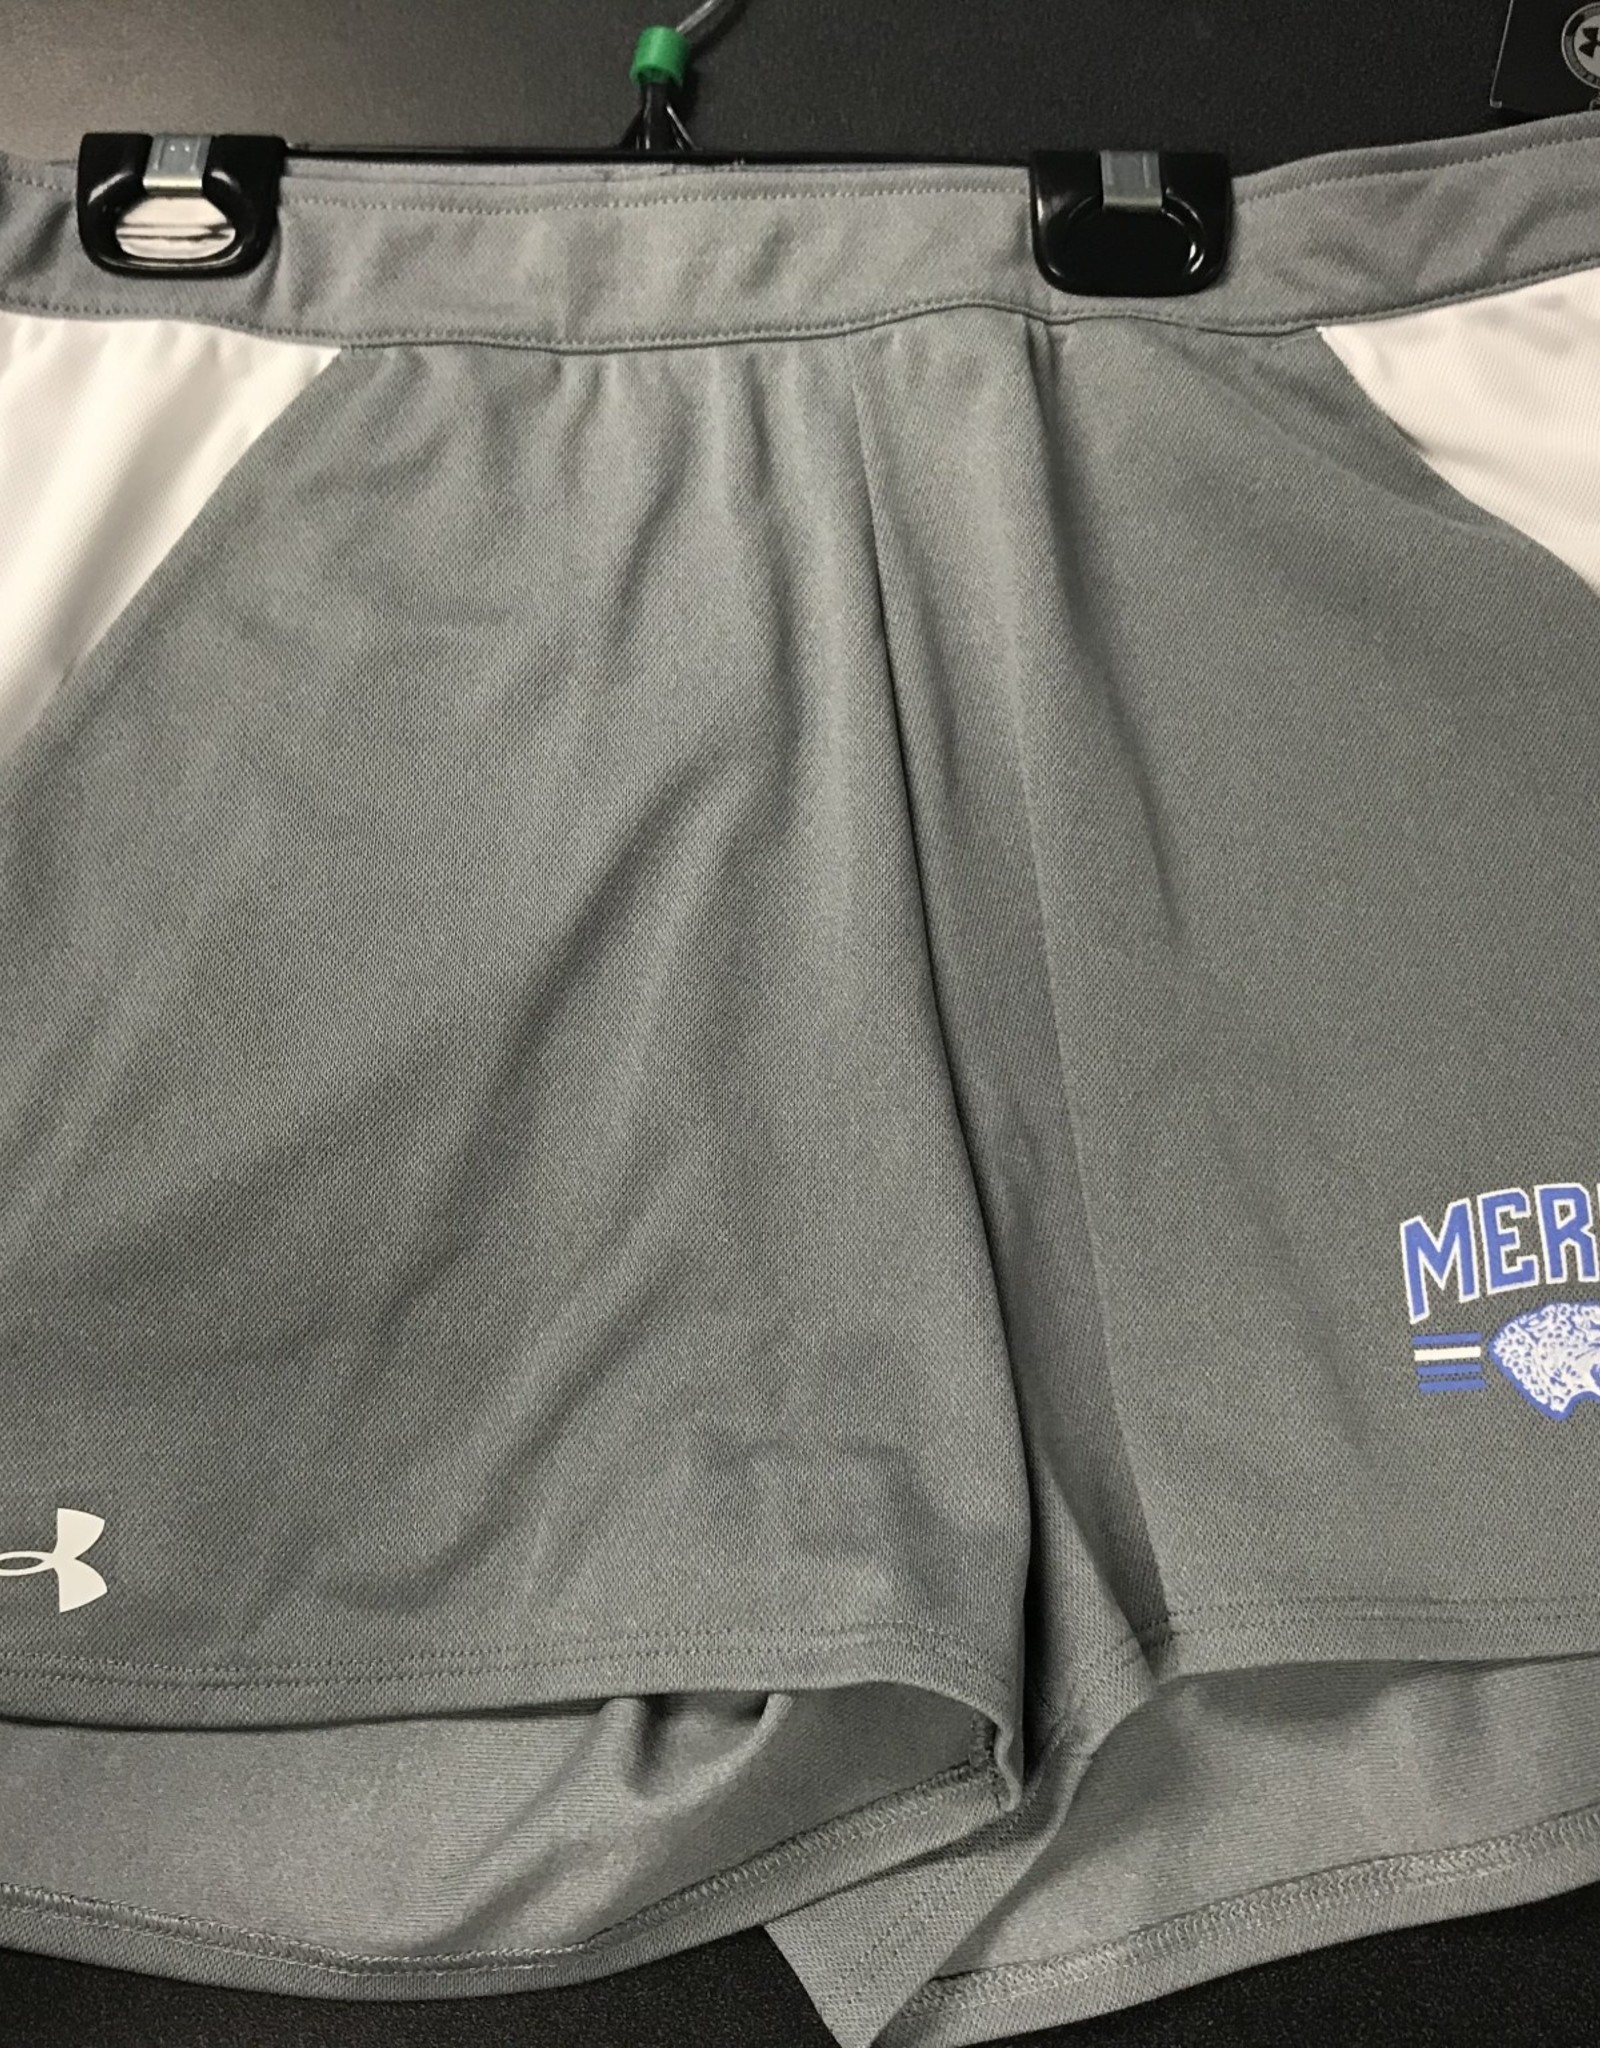 UNDER ARMOUR Mercy Under Armour Shorts